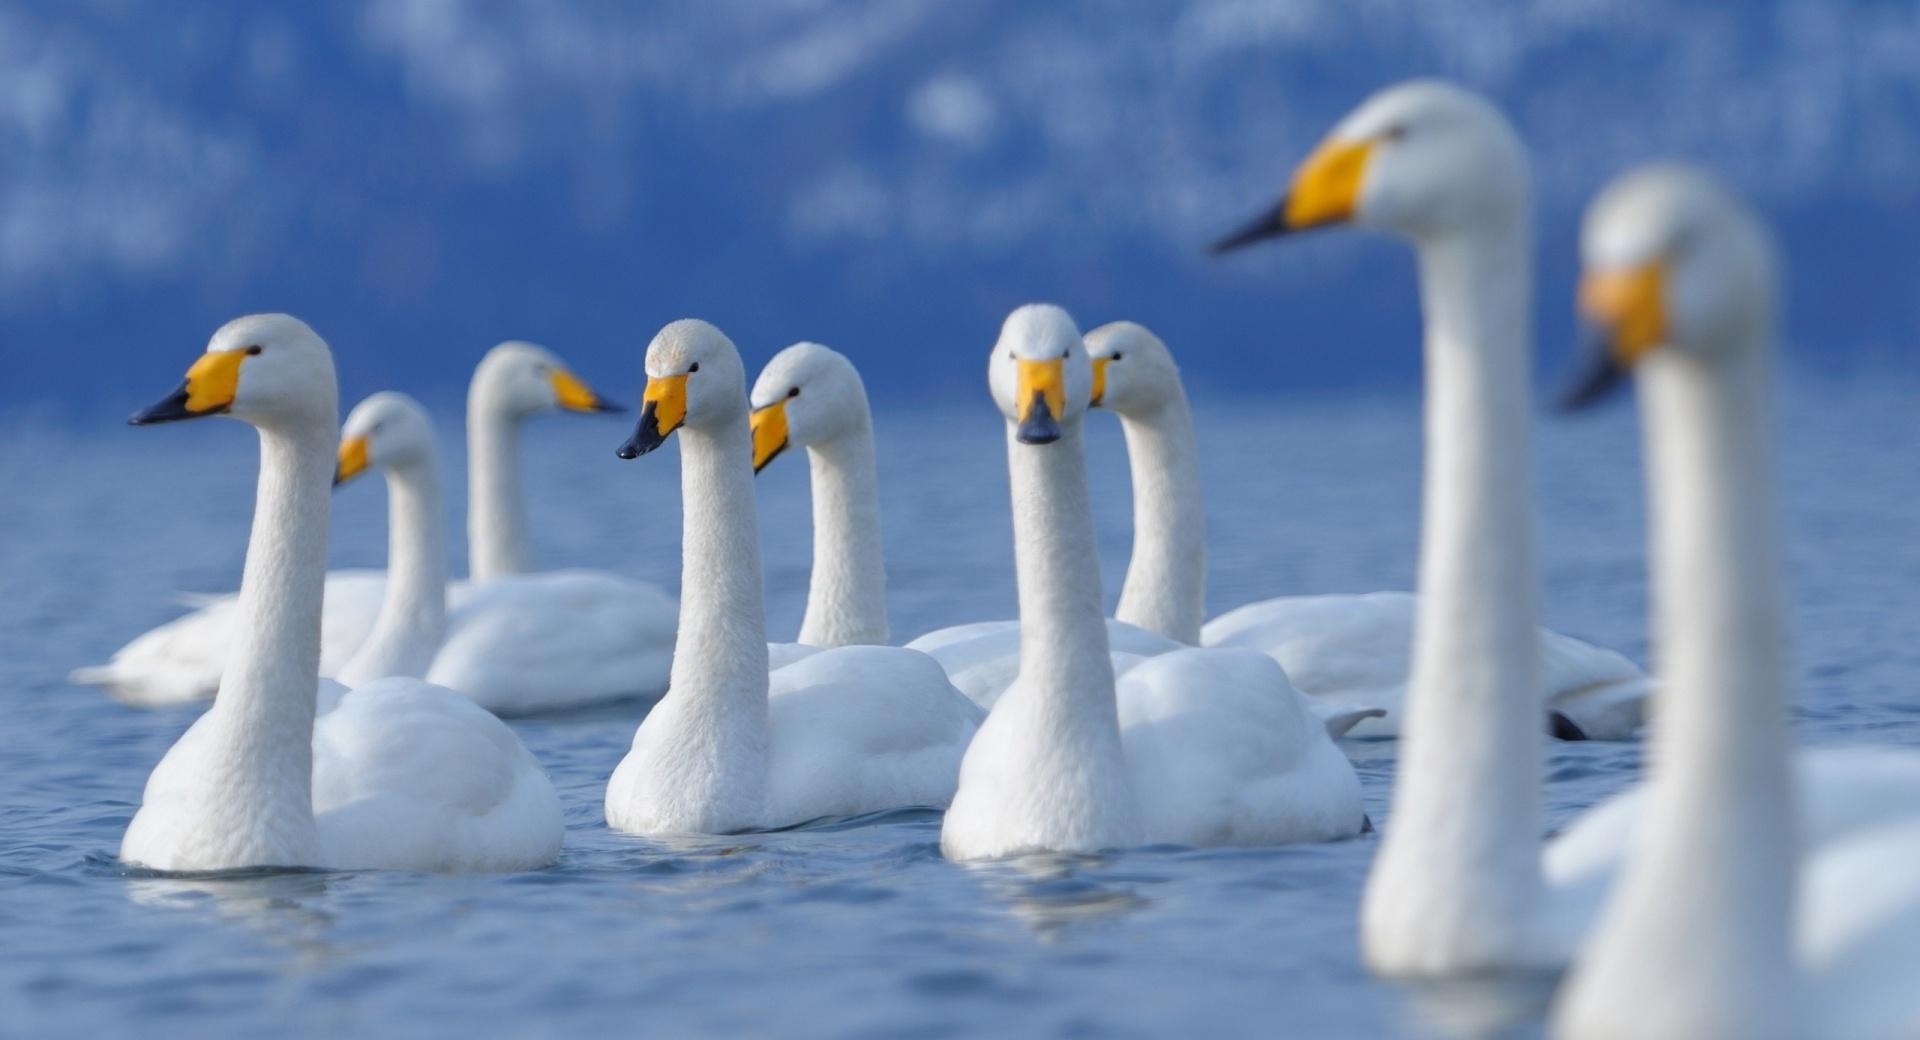 Flock Of Swans wallpapers HD quality